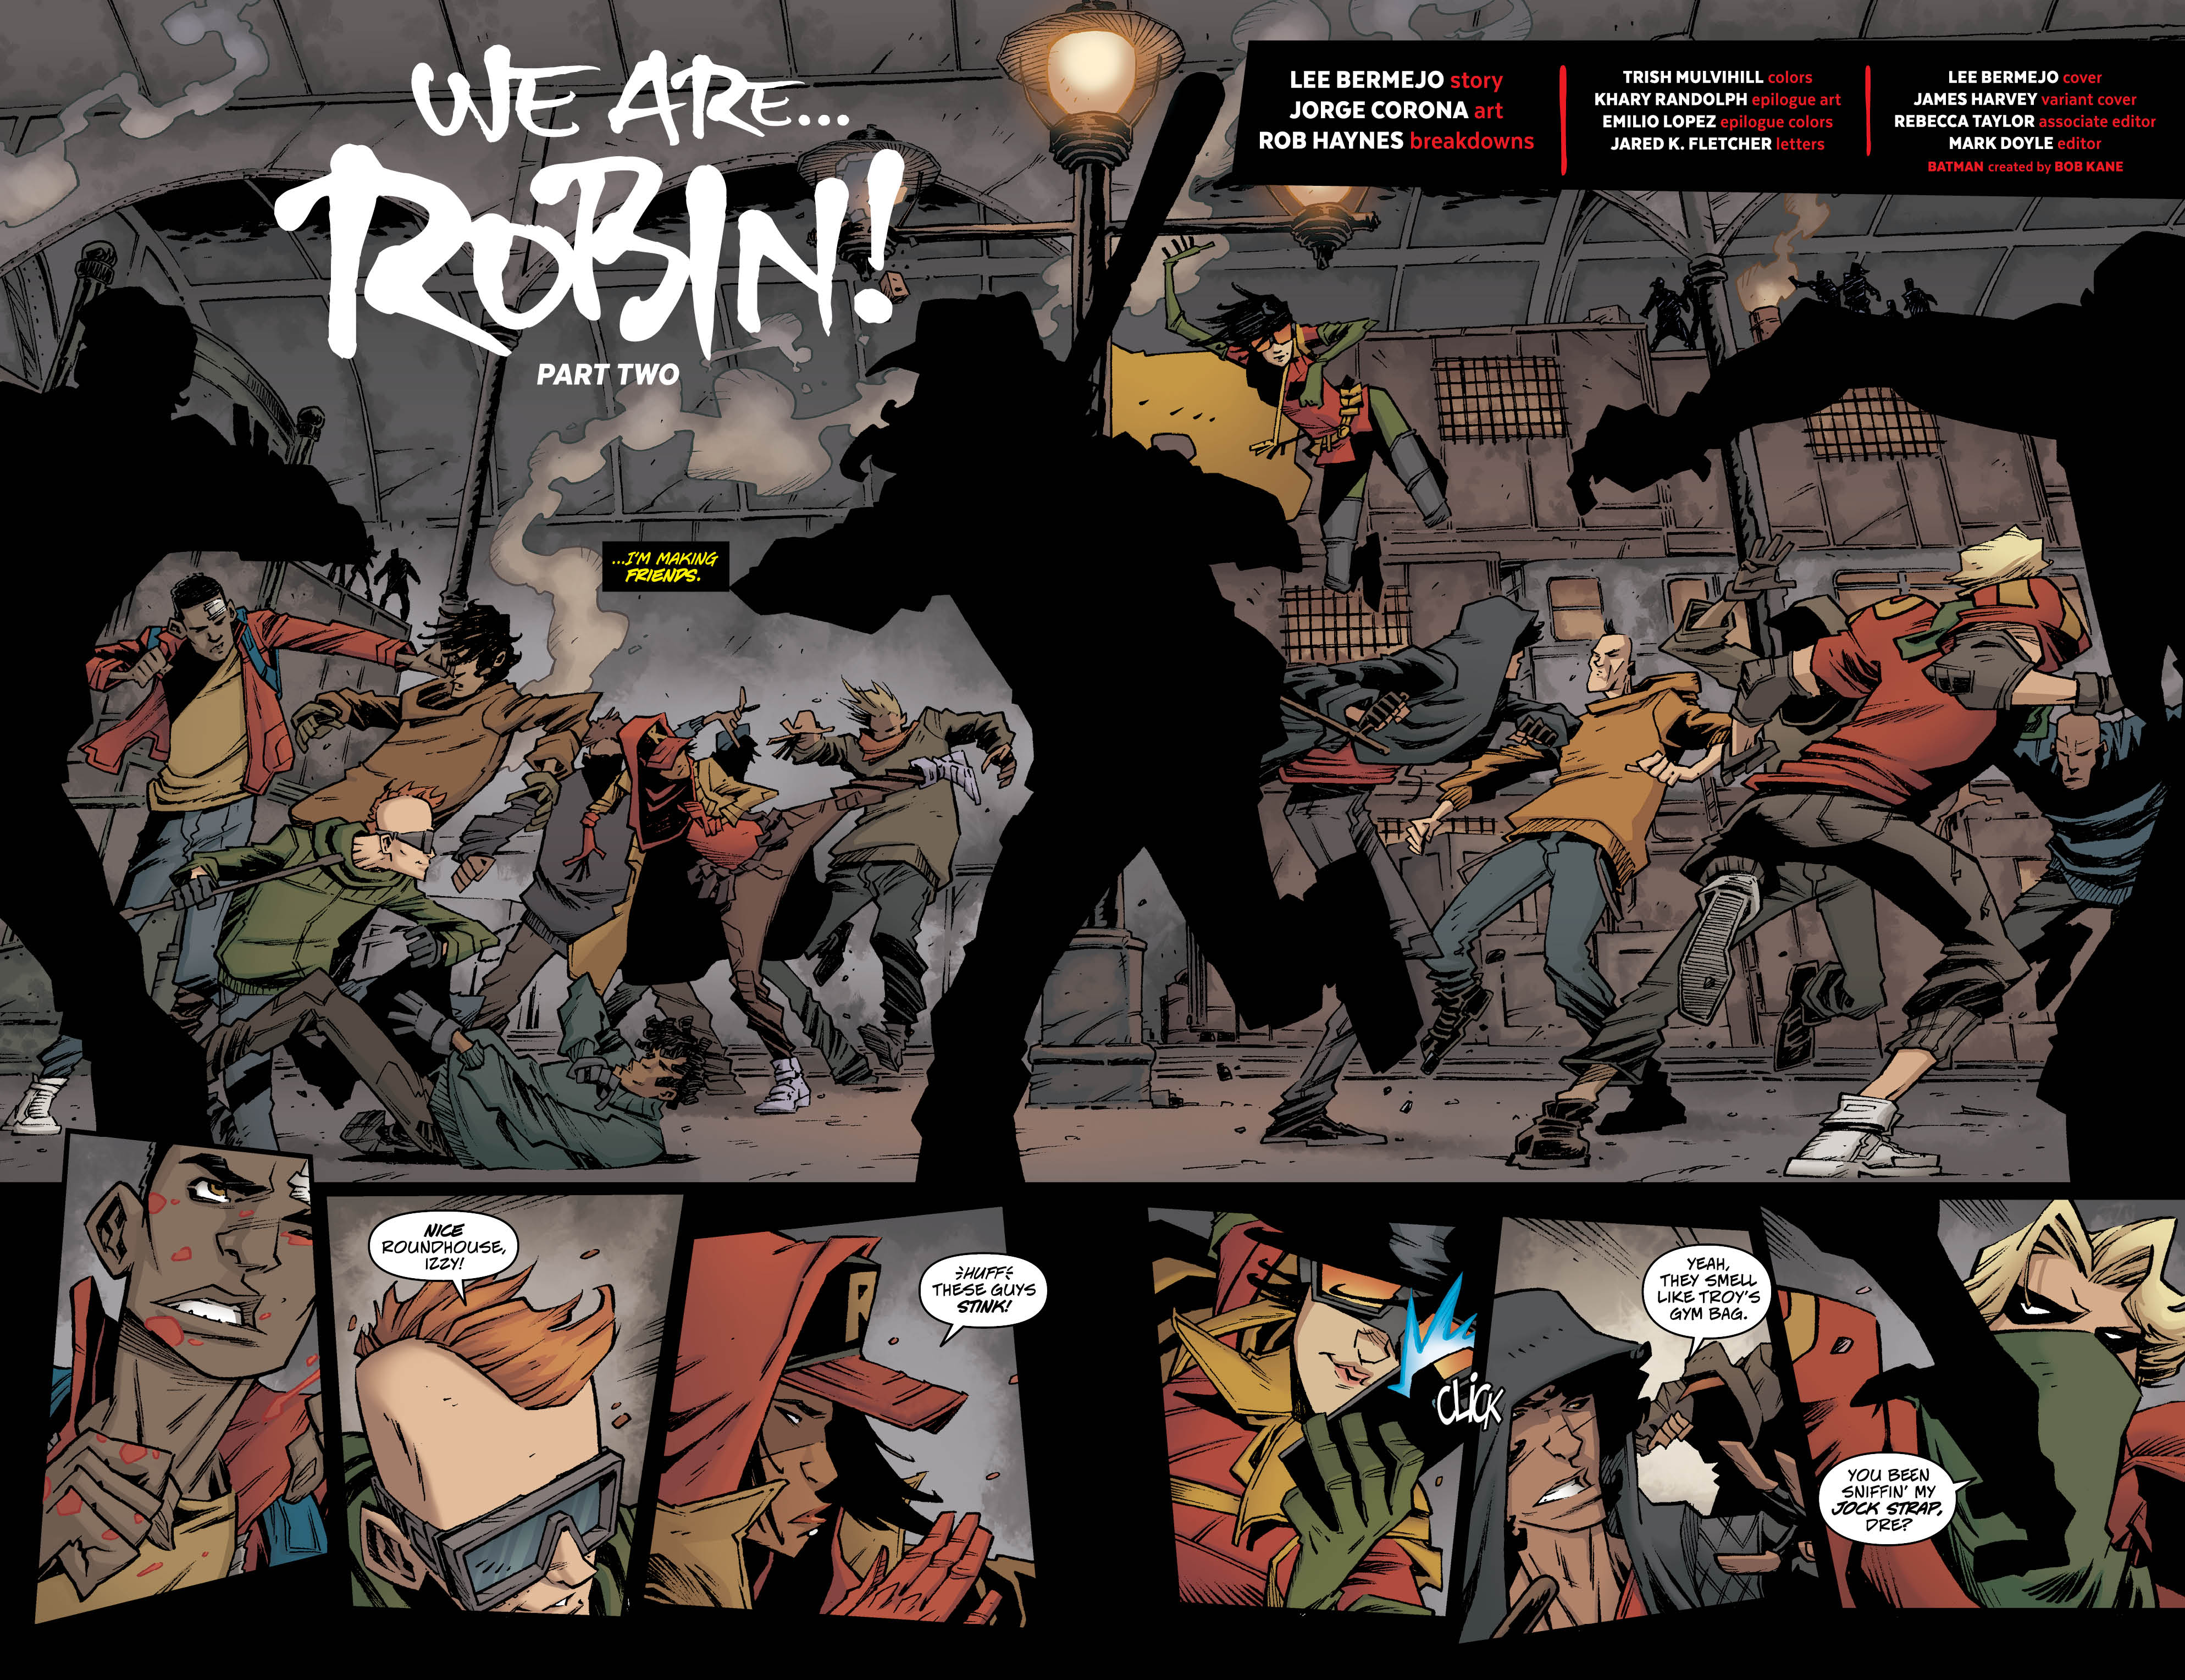 We Are Robin The Vigilante Business review